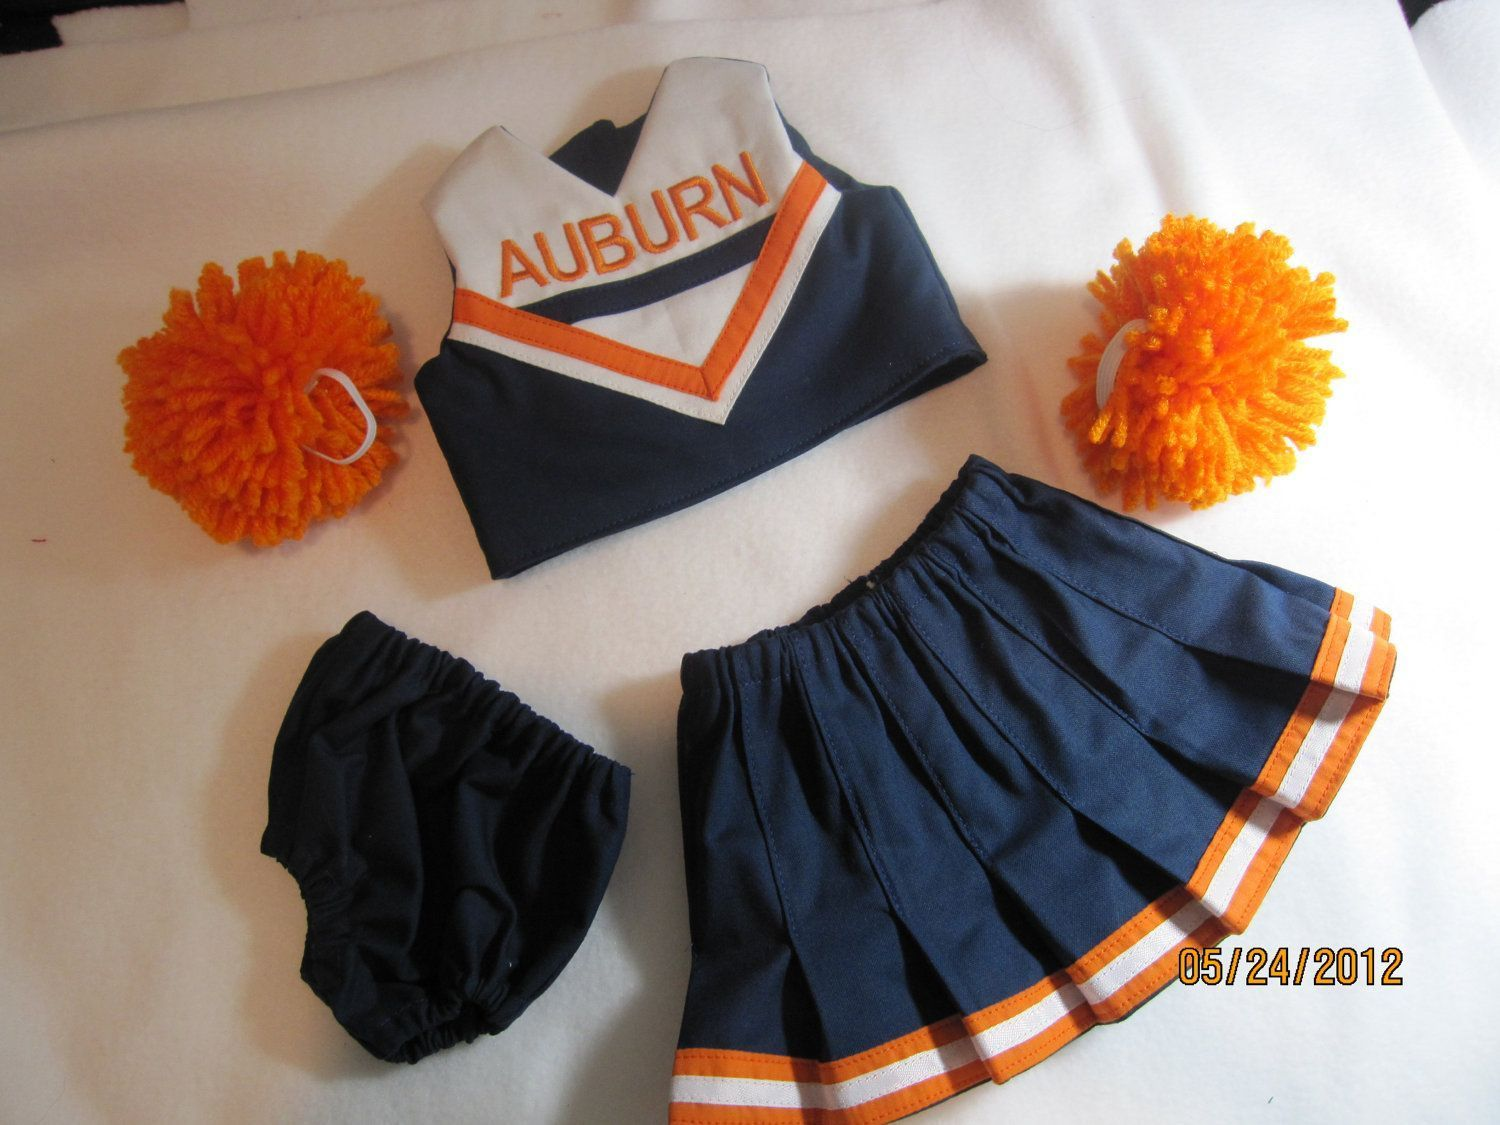 Pick Your Team or School - American Girl Doll or 18 inch doll Custom Design Cheerleading Outfits #18inchcheerleaderclothes Pick Your Team or School - American Girl Doll or 18 inch doll Custom Design Cheerleading Outfits. $23.50, via Etsy. #18inchcheerleaderclothes Pick Your Team or School - American Girl Doll or 18 inch doll Custom Design Cheerleading Outfits #18inchcheerleaderclothes Pick Your Team or School - American Girl Doll or 18 inch doll Custom Design Cheerleading Outfits. $23.50, via Et #18inchcheerleaderclothes